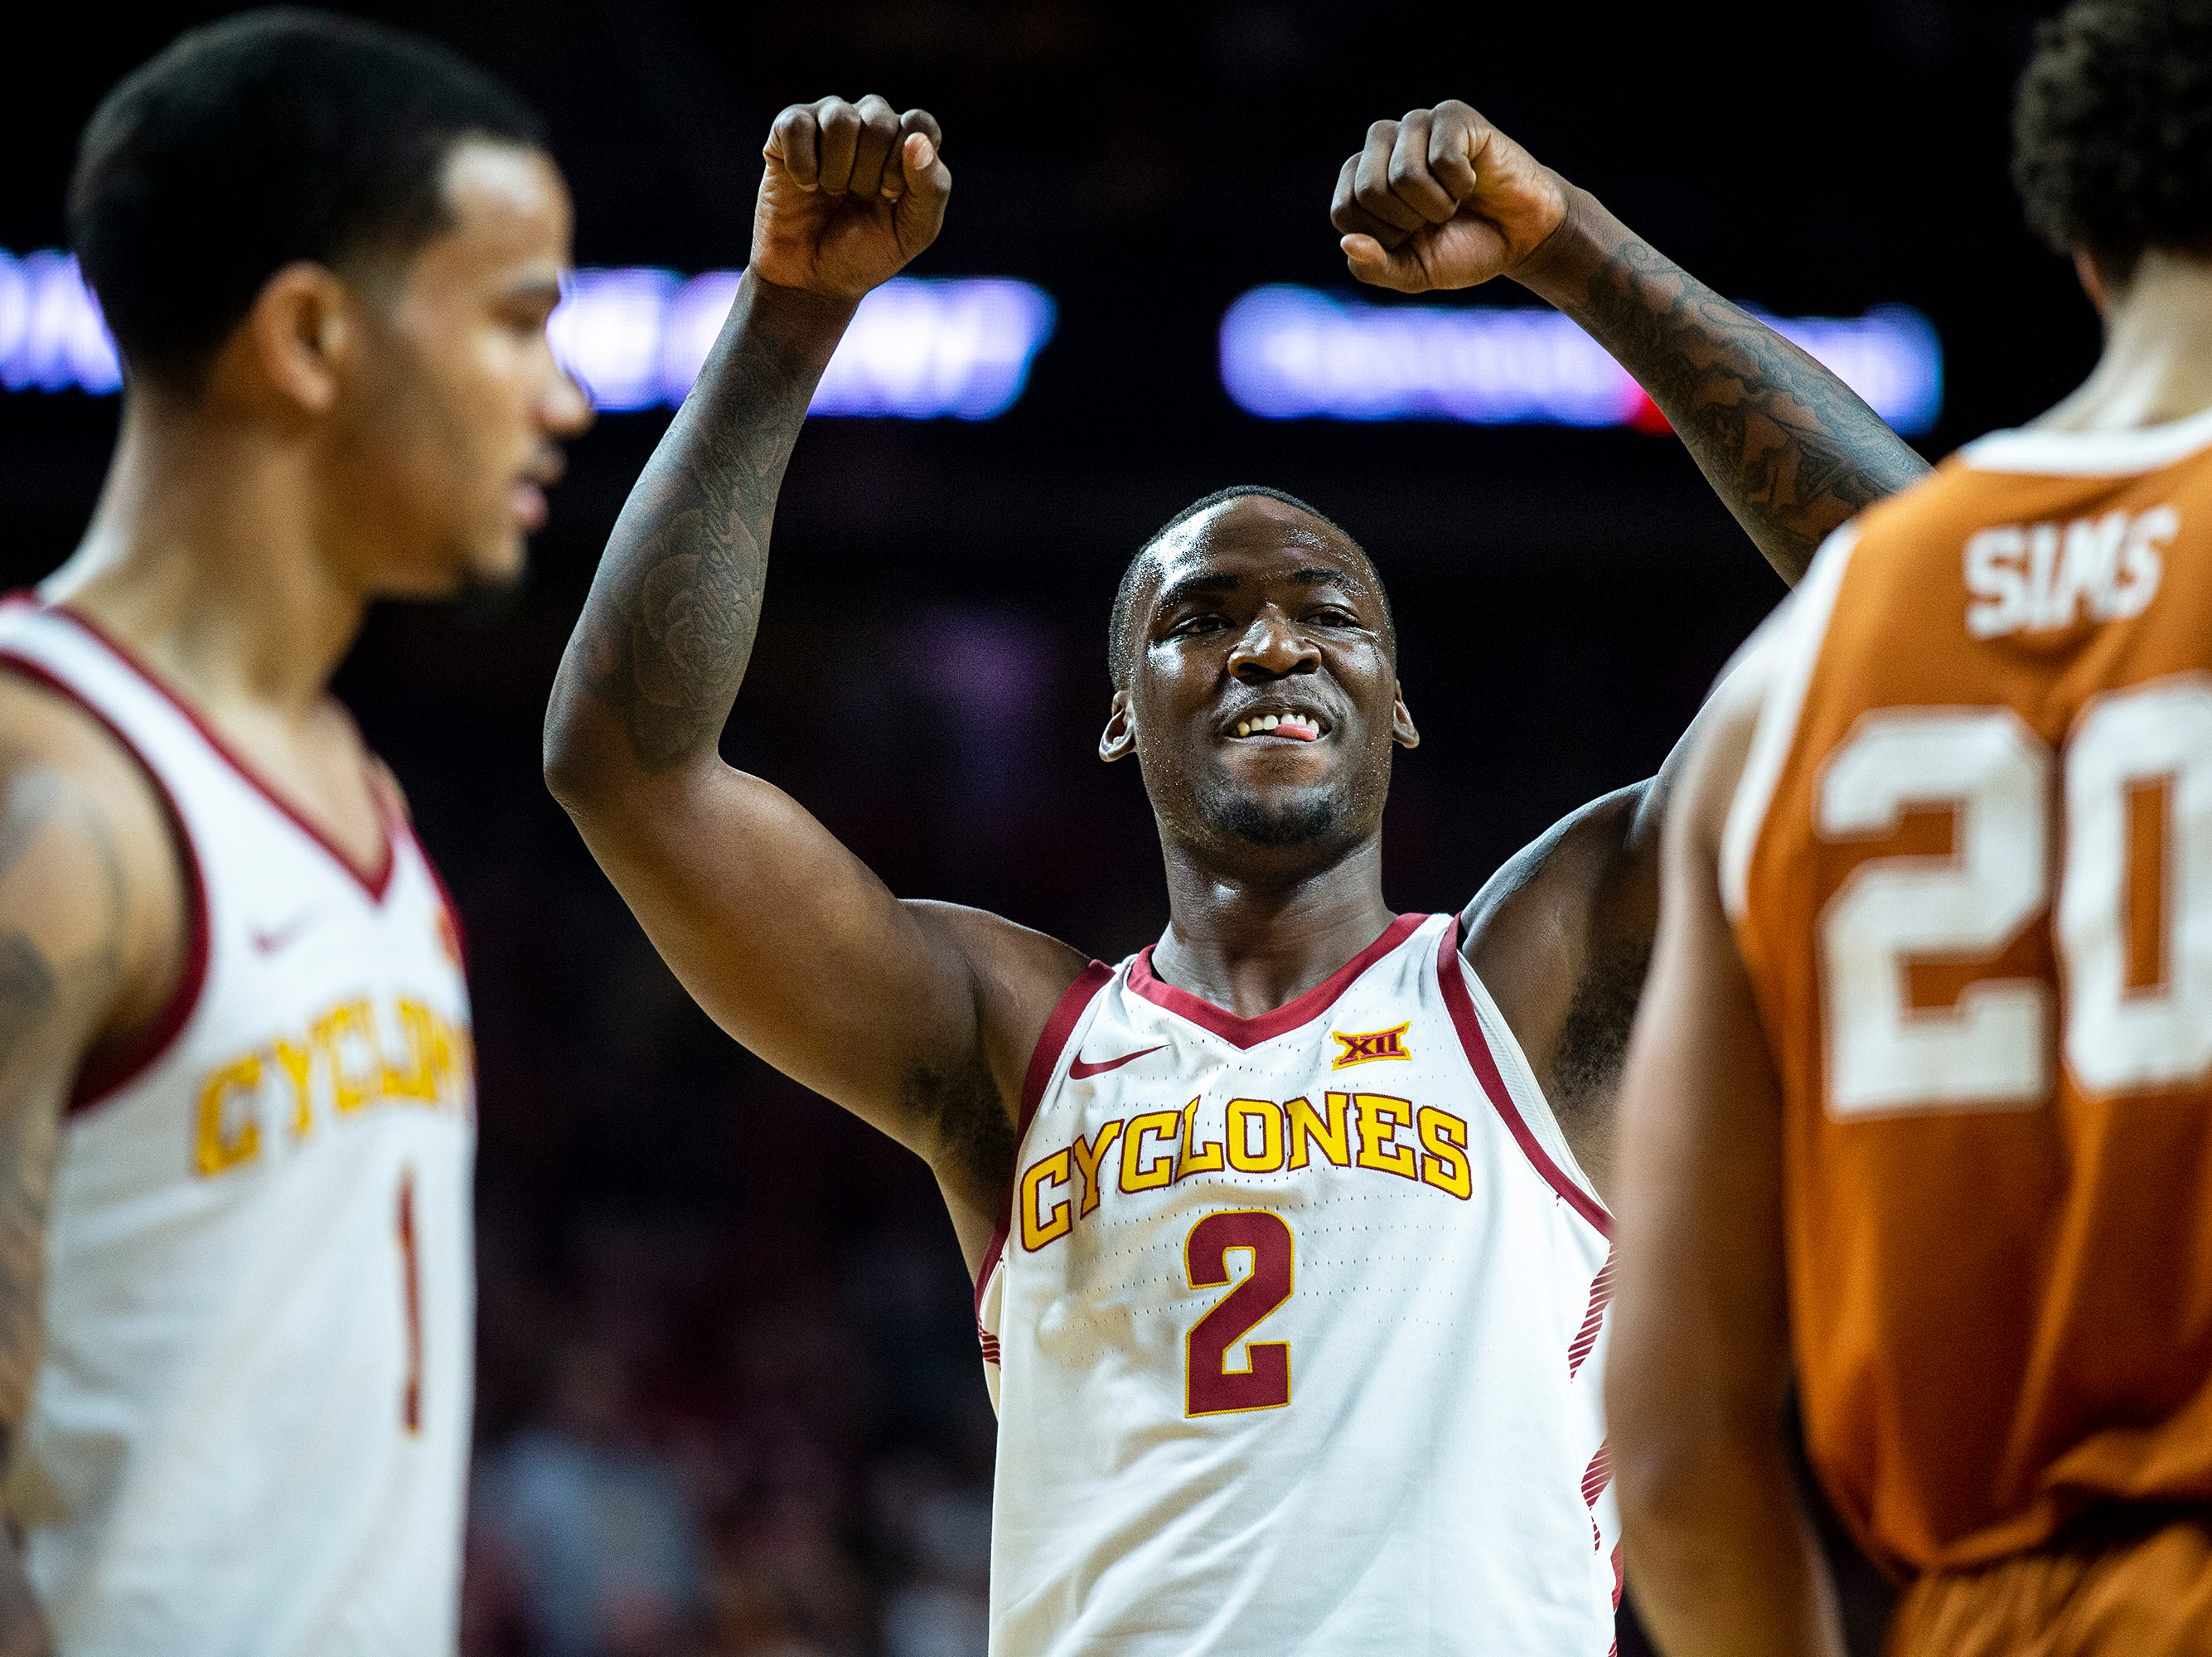 Iowa State's Cameron Lard celebrates after scoring and drawing a foul during the Iowa State men's basketball game against Texas on Saturday, Feb. 2, 2019, in Hilton Coliseum. The Cyclones defeated the Longhorns 65-60.